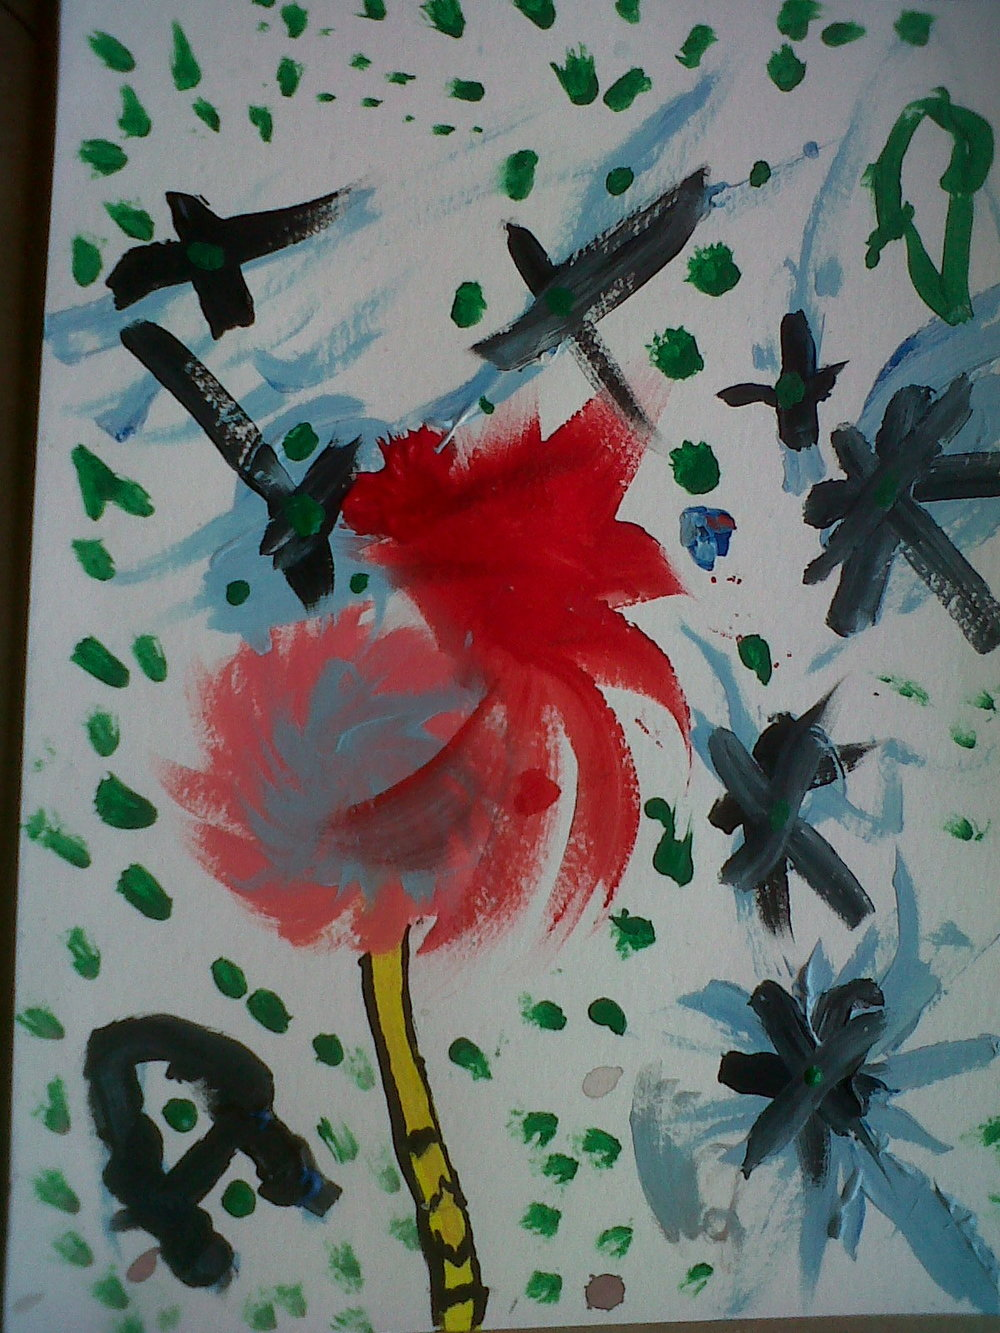 Dr Seuss 's party and the creepy tree. by Lucas Marcos age 7.jpg